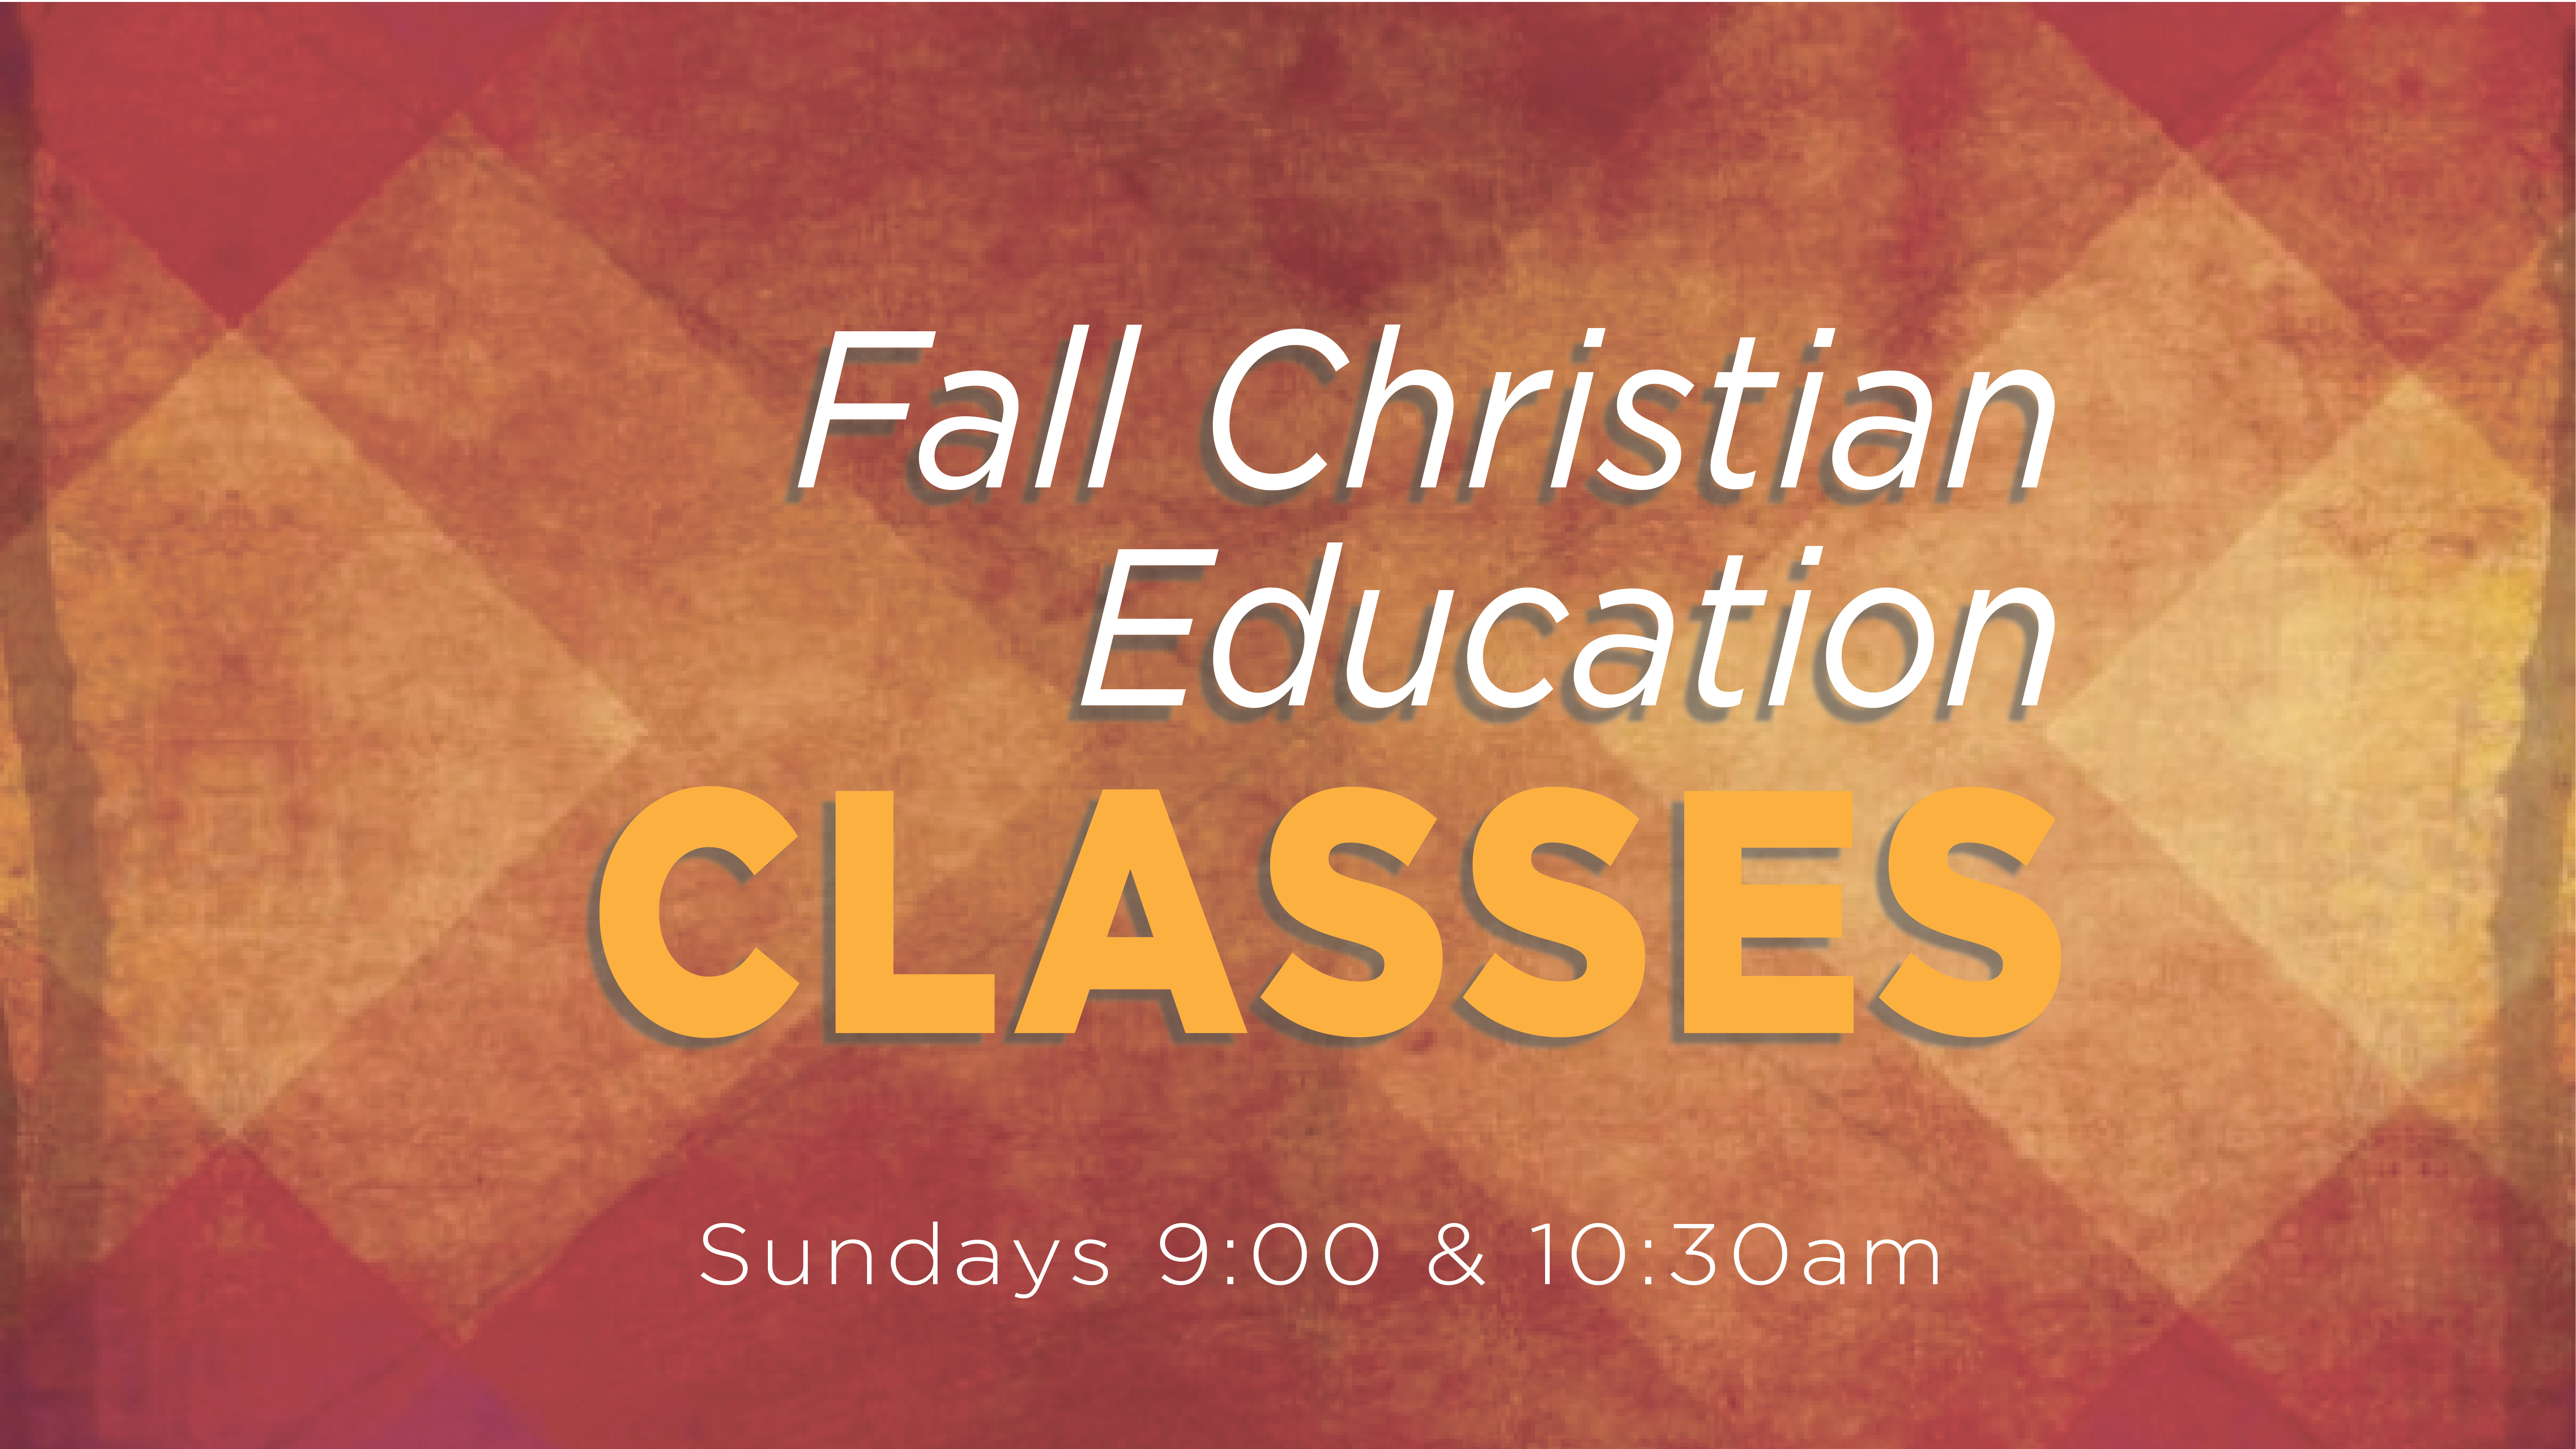 Christian Ed Fall 2019 new-01 image